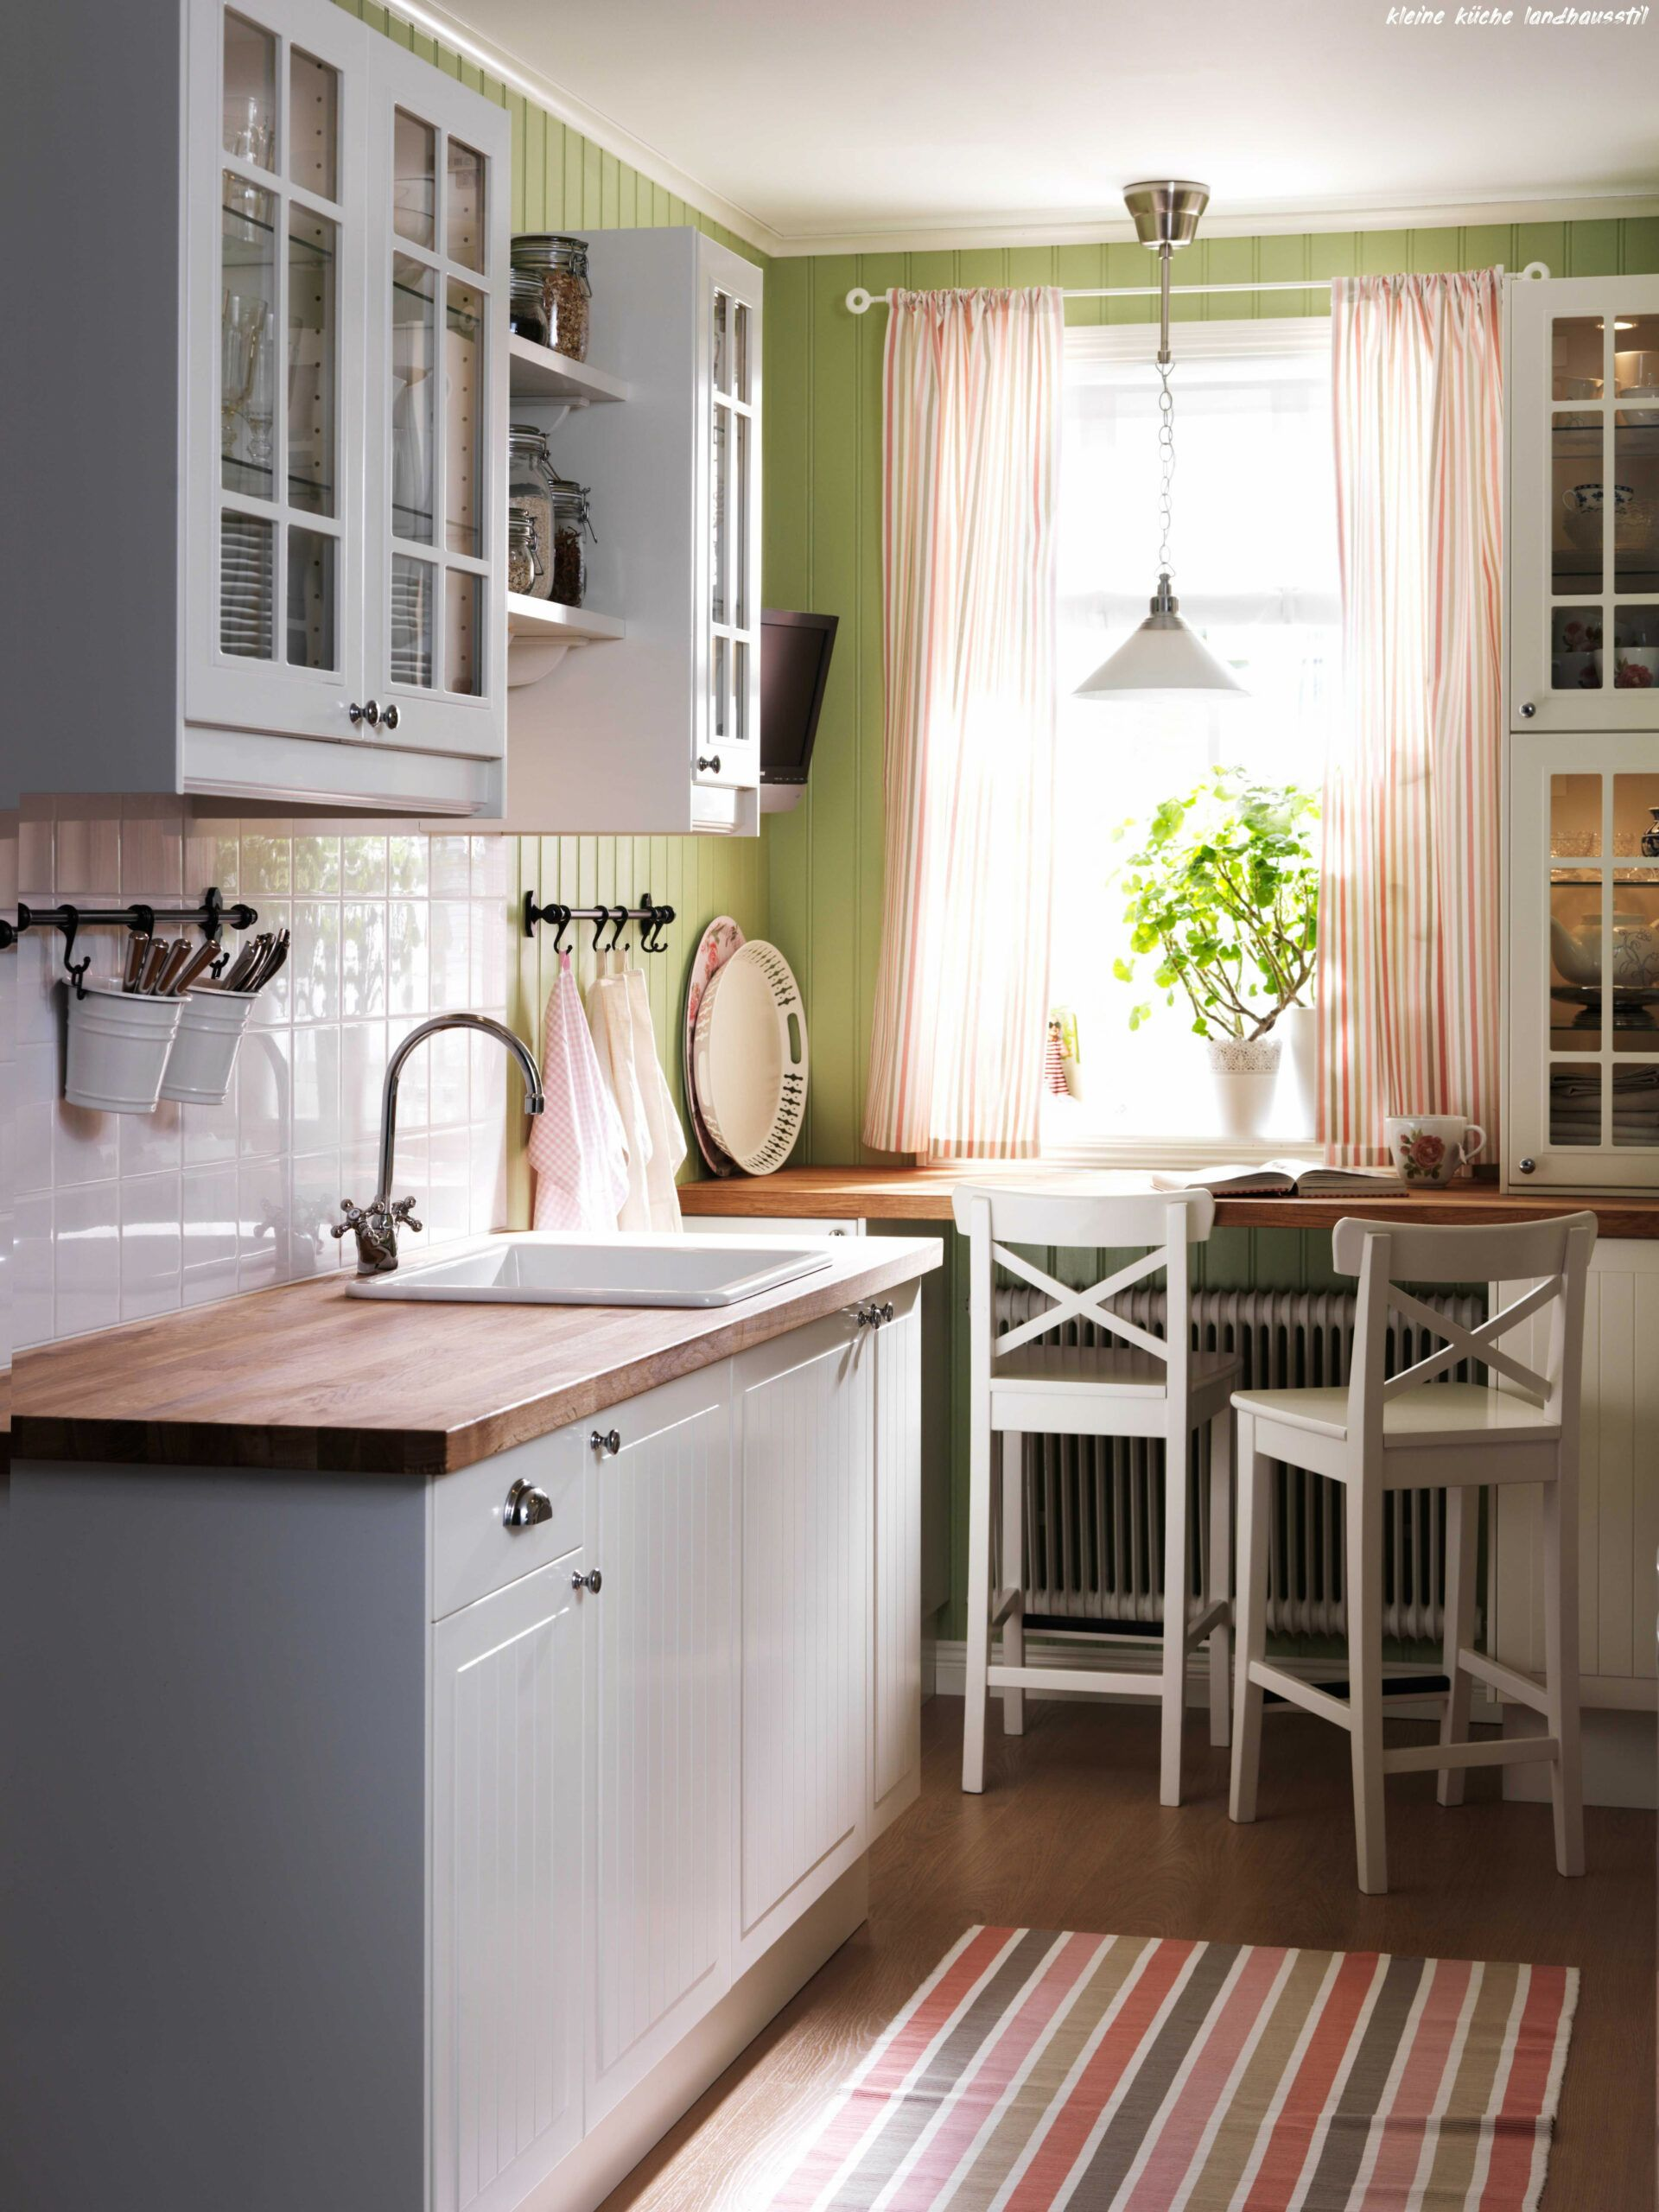 9 Kleine Küche Landhausstil In 2020 Ikea Kitchen Inspiration Kitchen Design Small Kitchen Inspirations